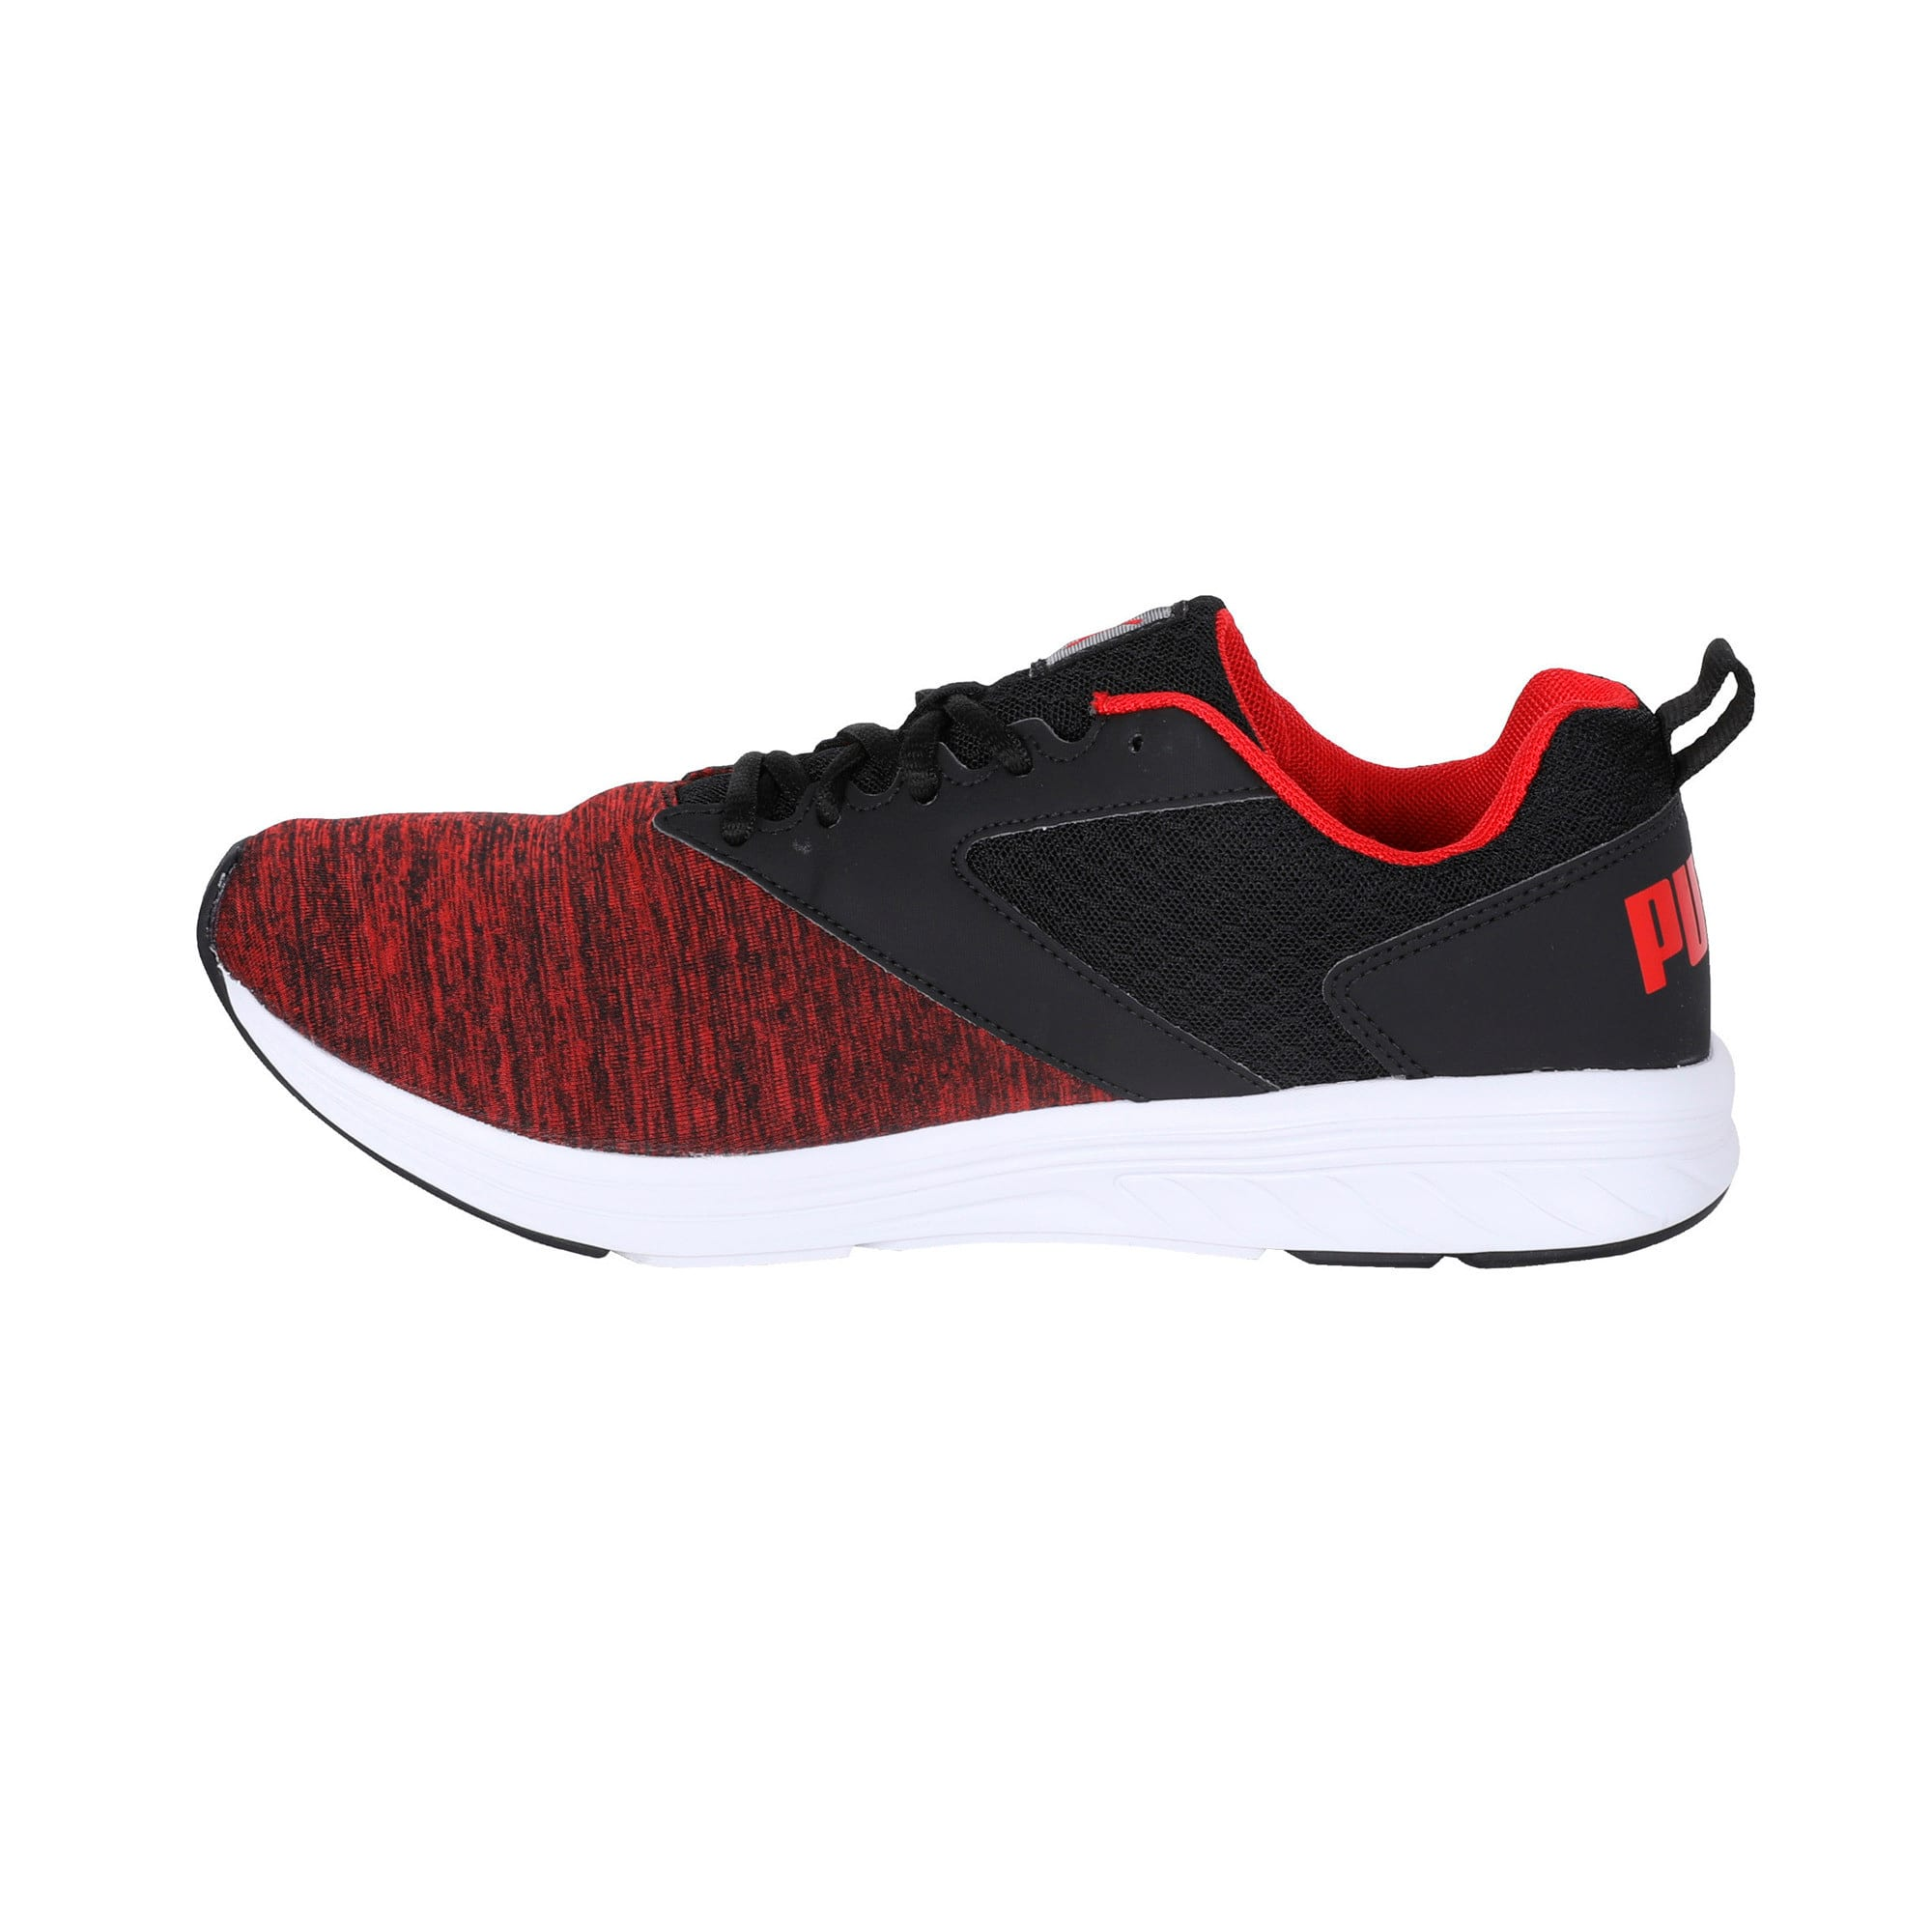 Thumbnail 1 of Comet IPD, Puma Black-High Risk Red, medium-IND